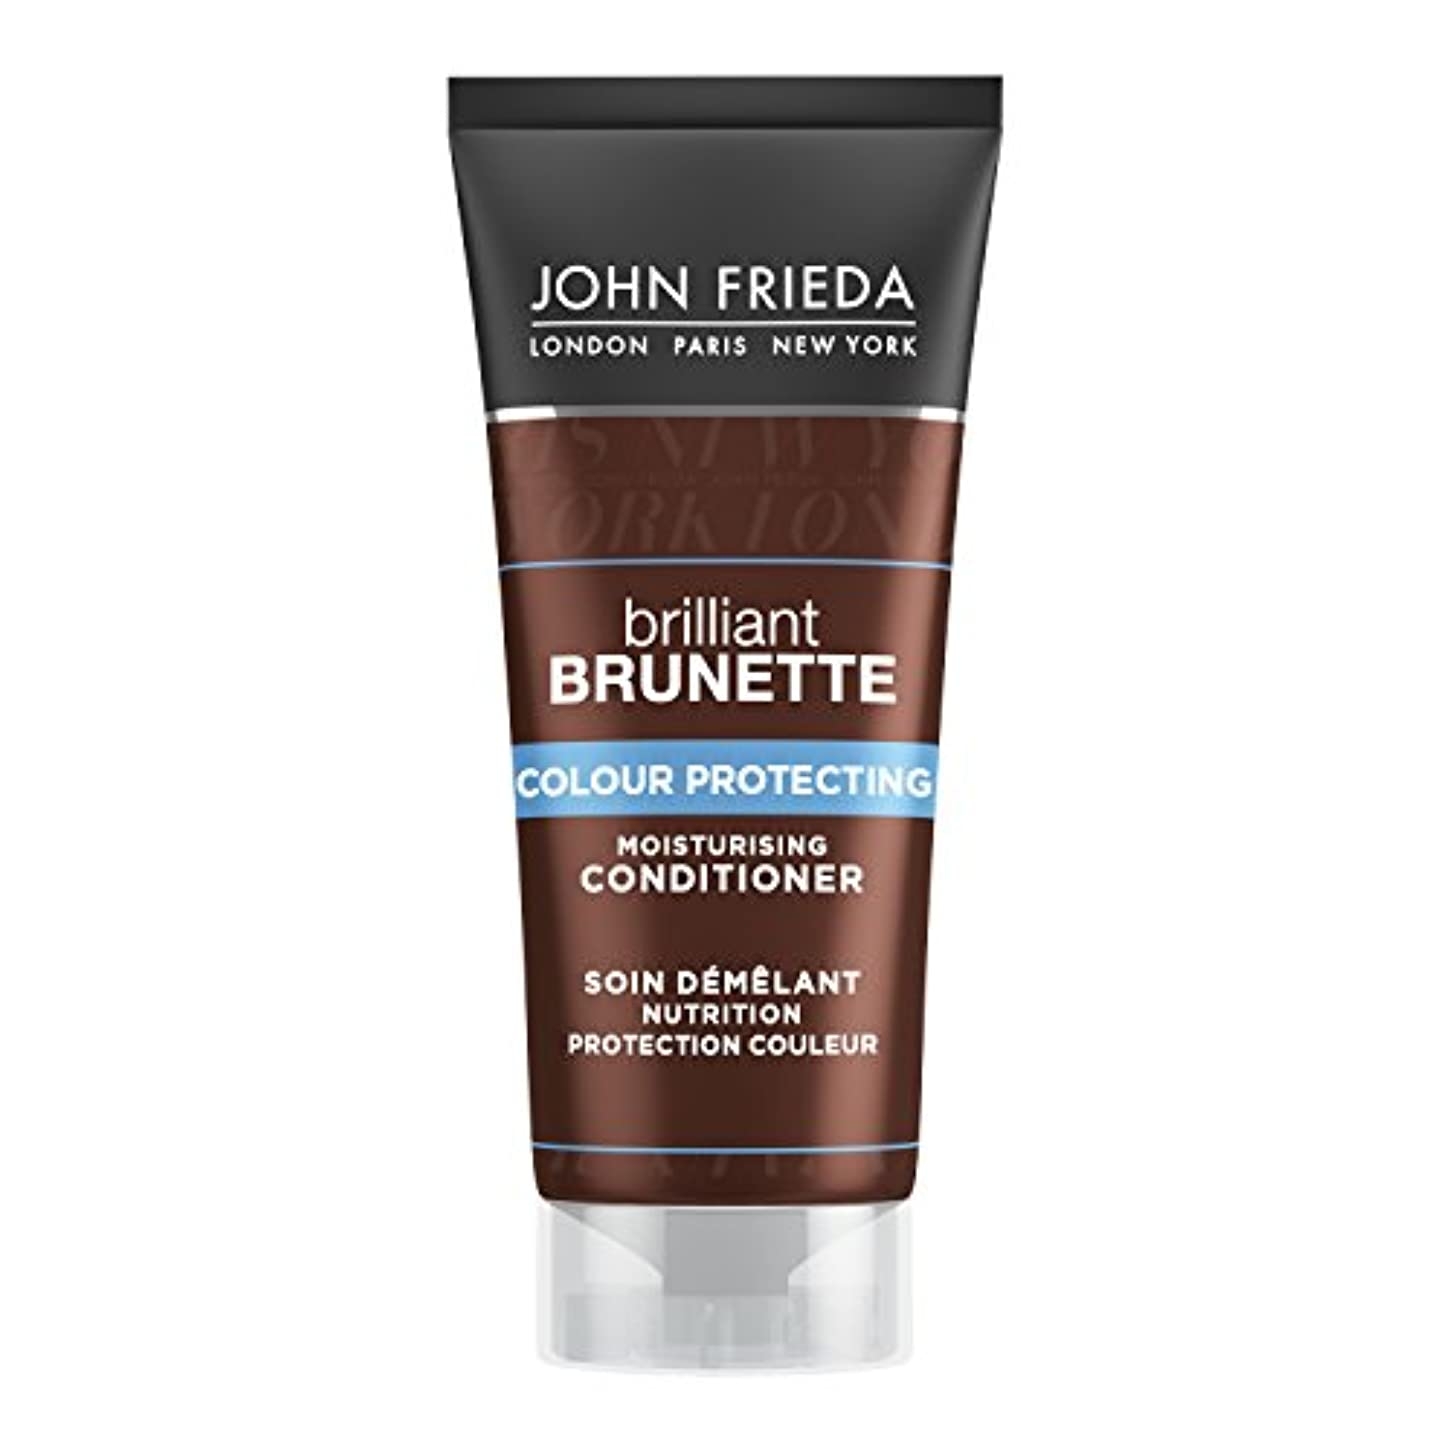 シェルター医薬品髄John Frieda Brilliant Brunette Moisturising Conditioner Travel Size 50ml